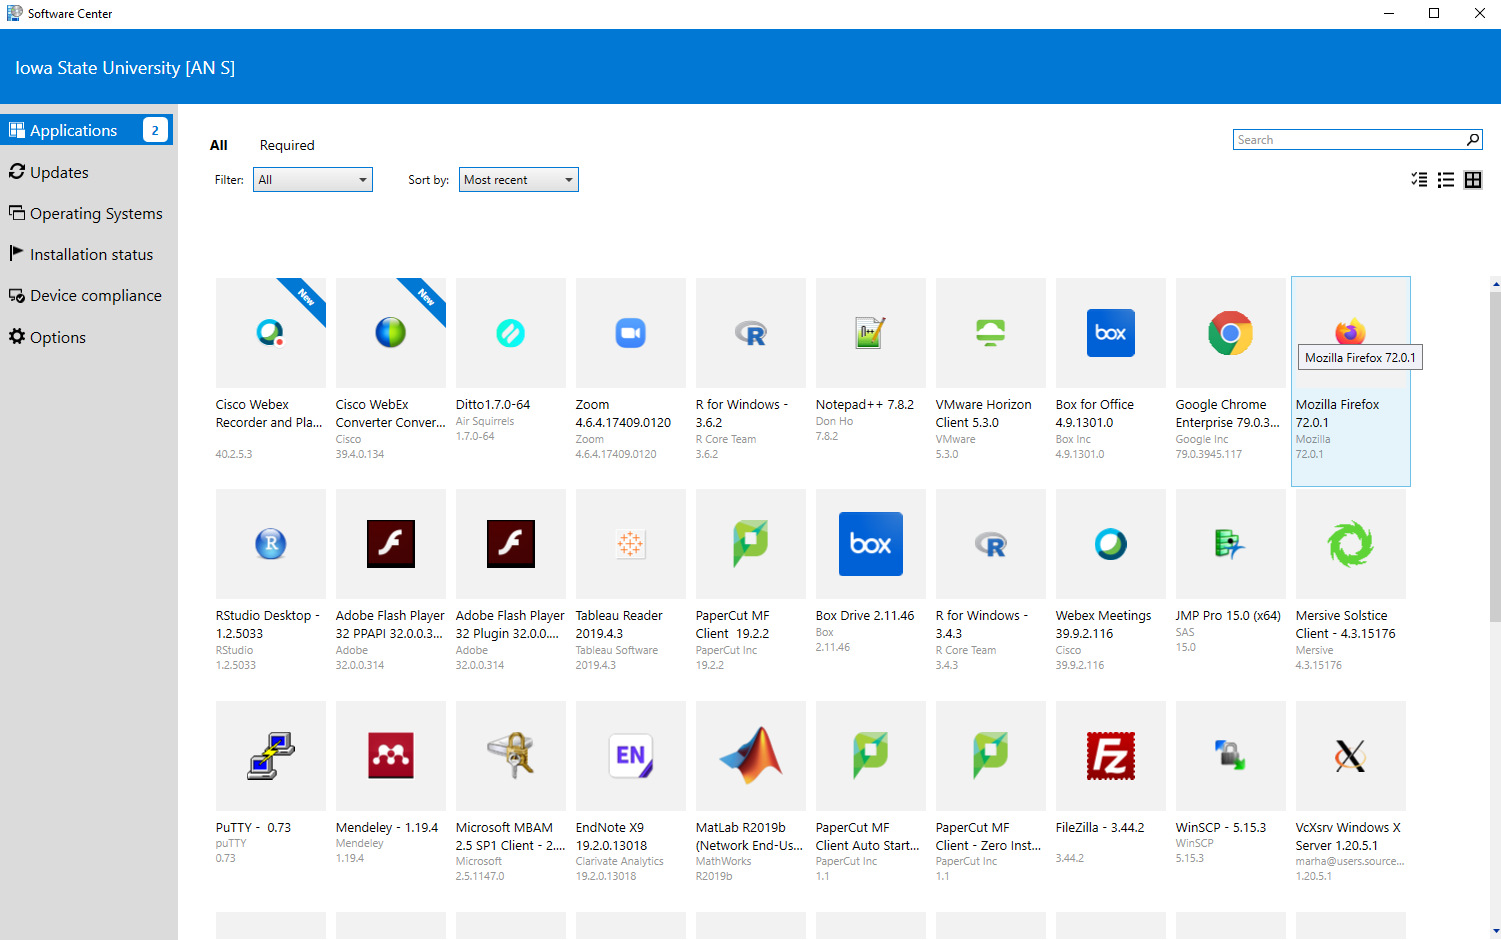 Software Center main page